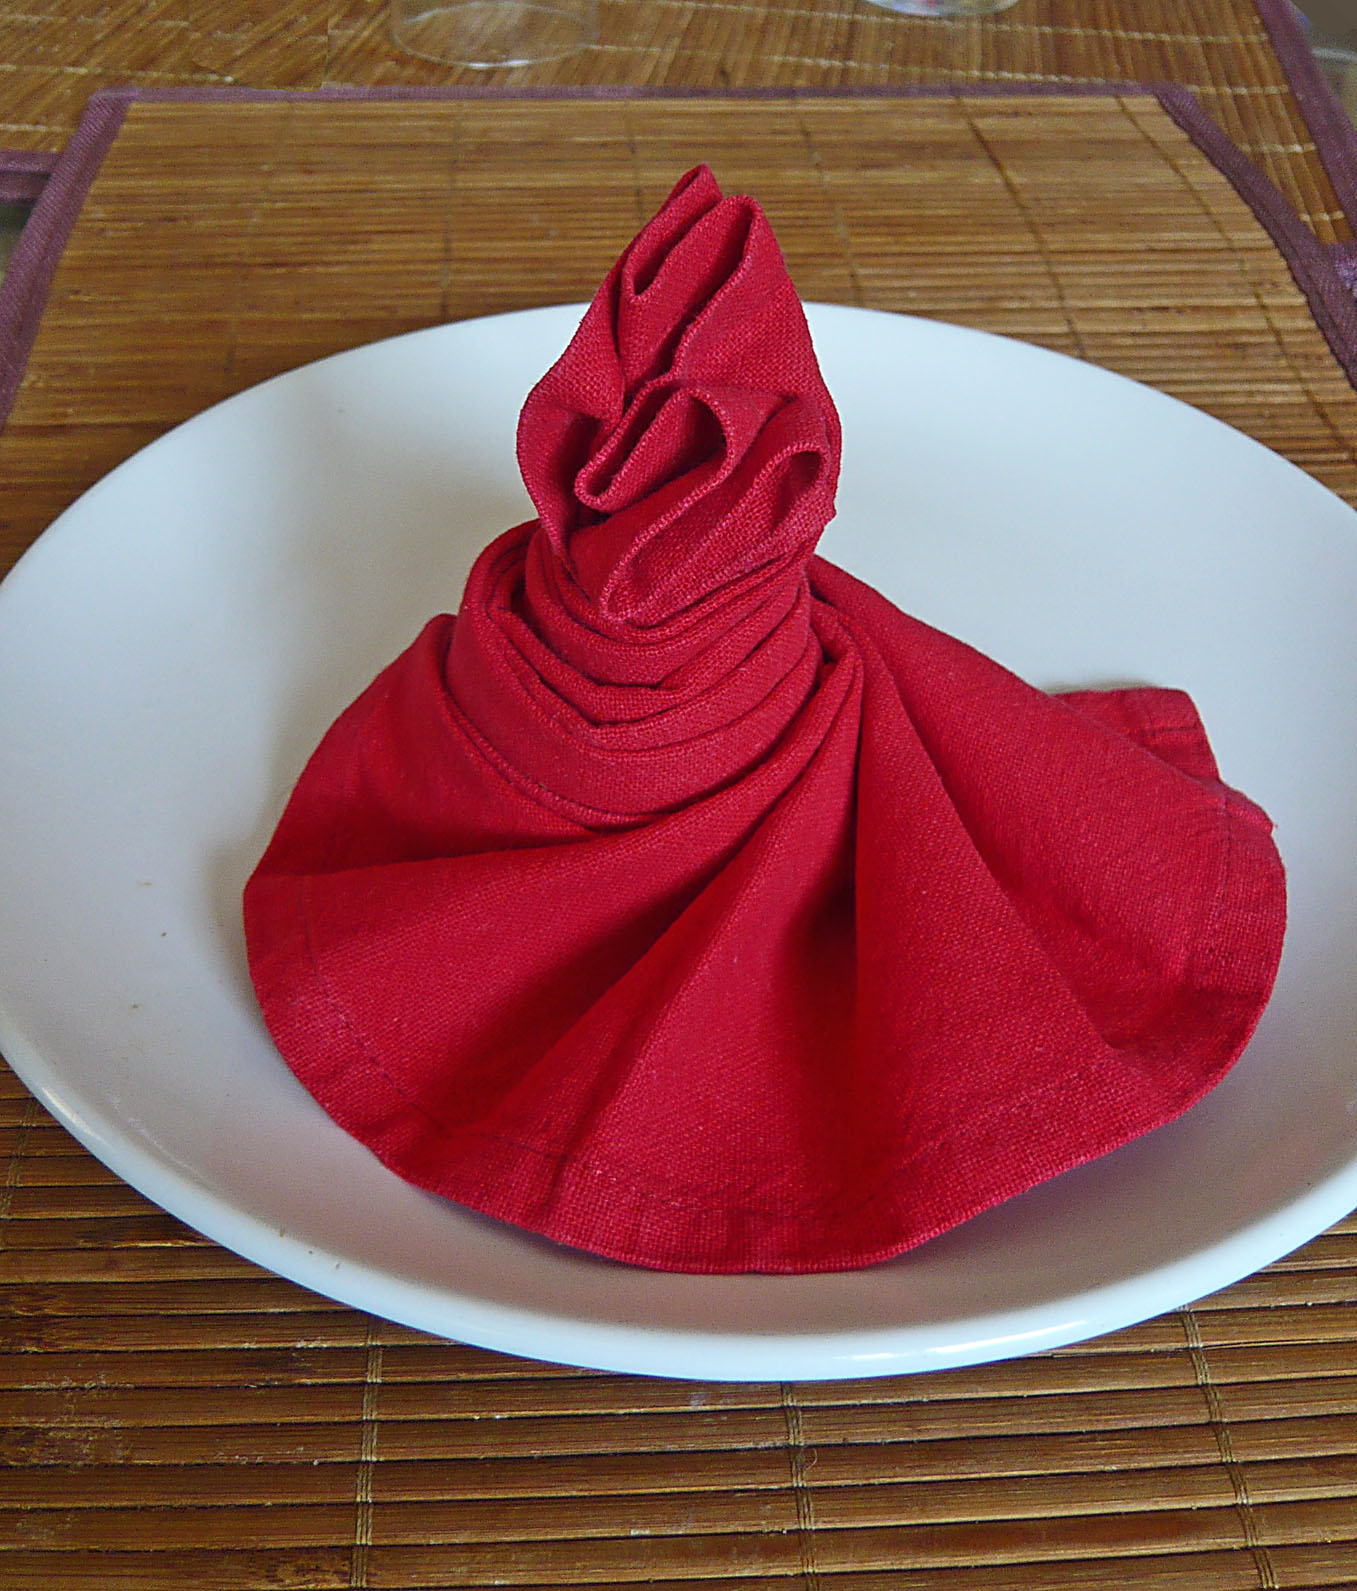 Pliage de serviettes flamenco recettes light - Pliage serviette de table ...